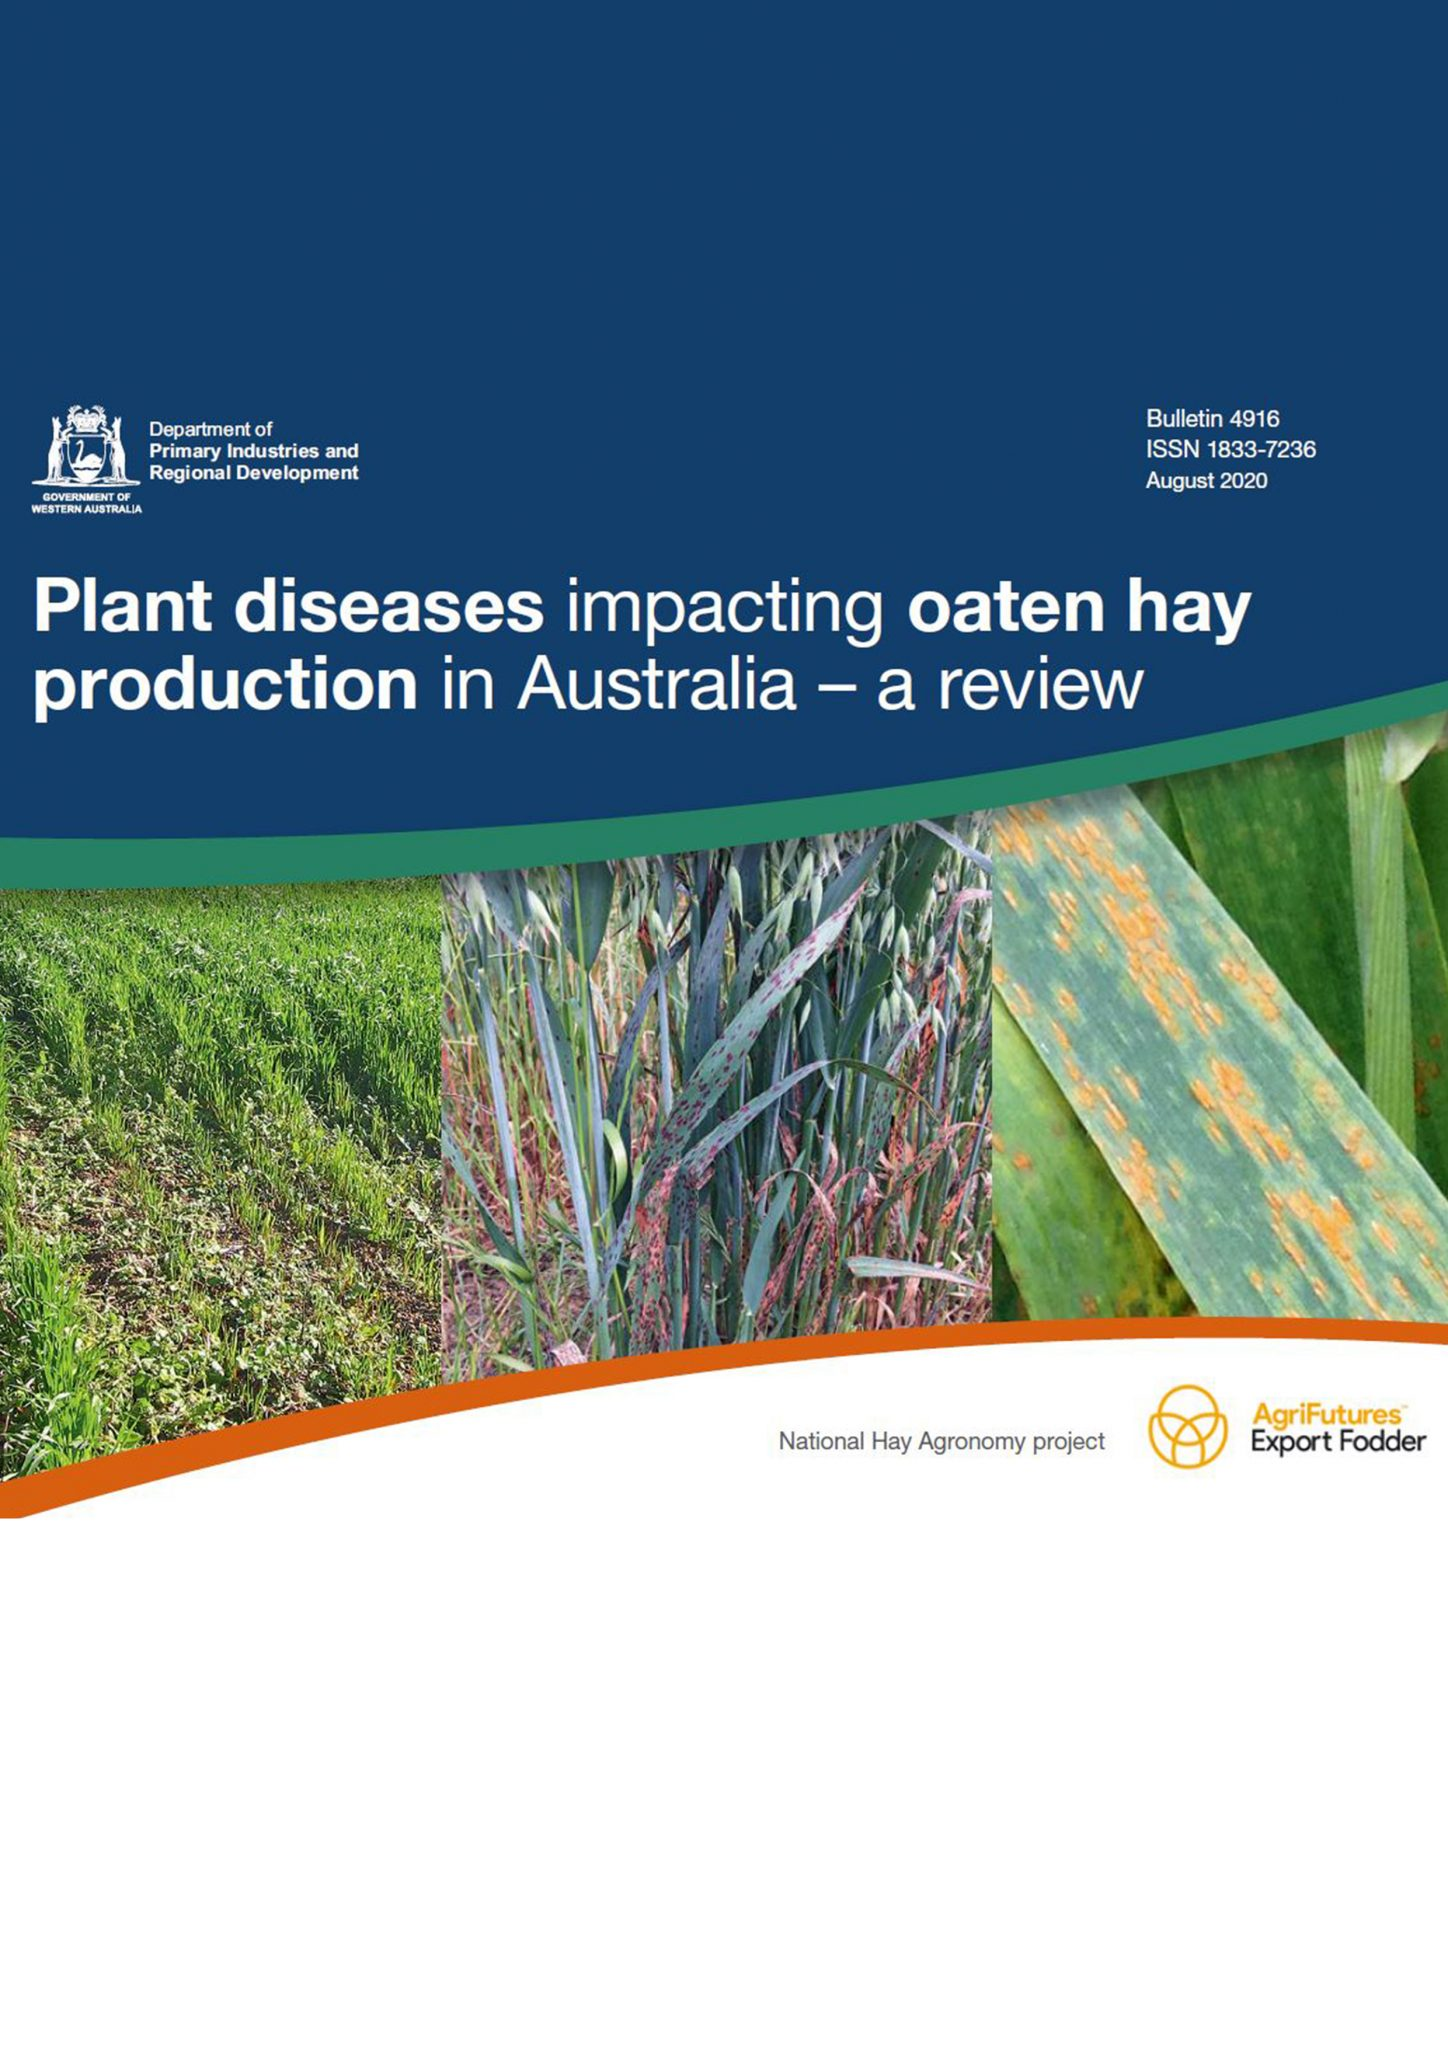 Plant diseases impacting oaten hay production in Australia – a review - image